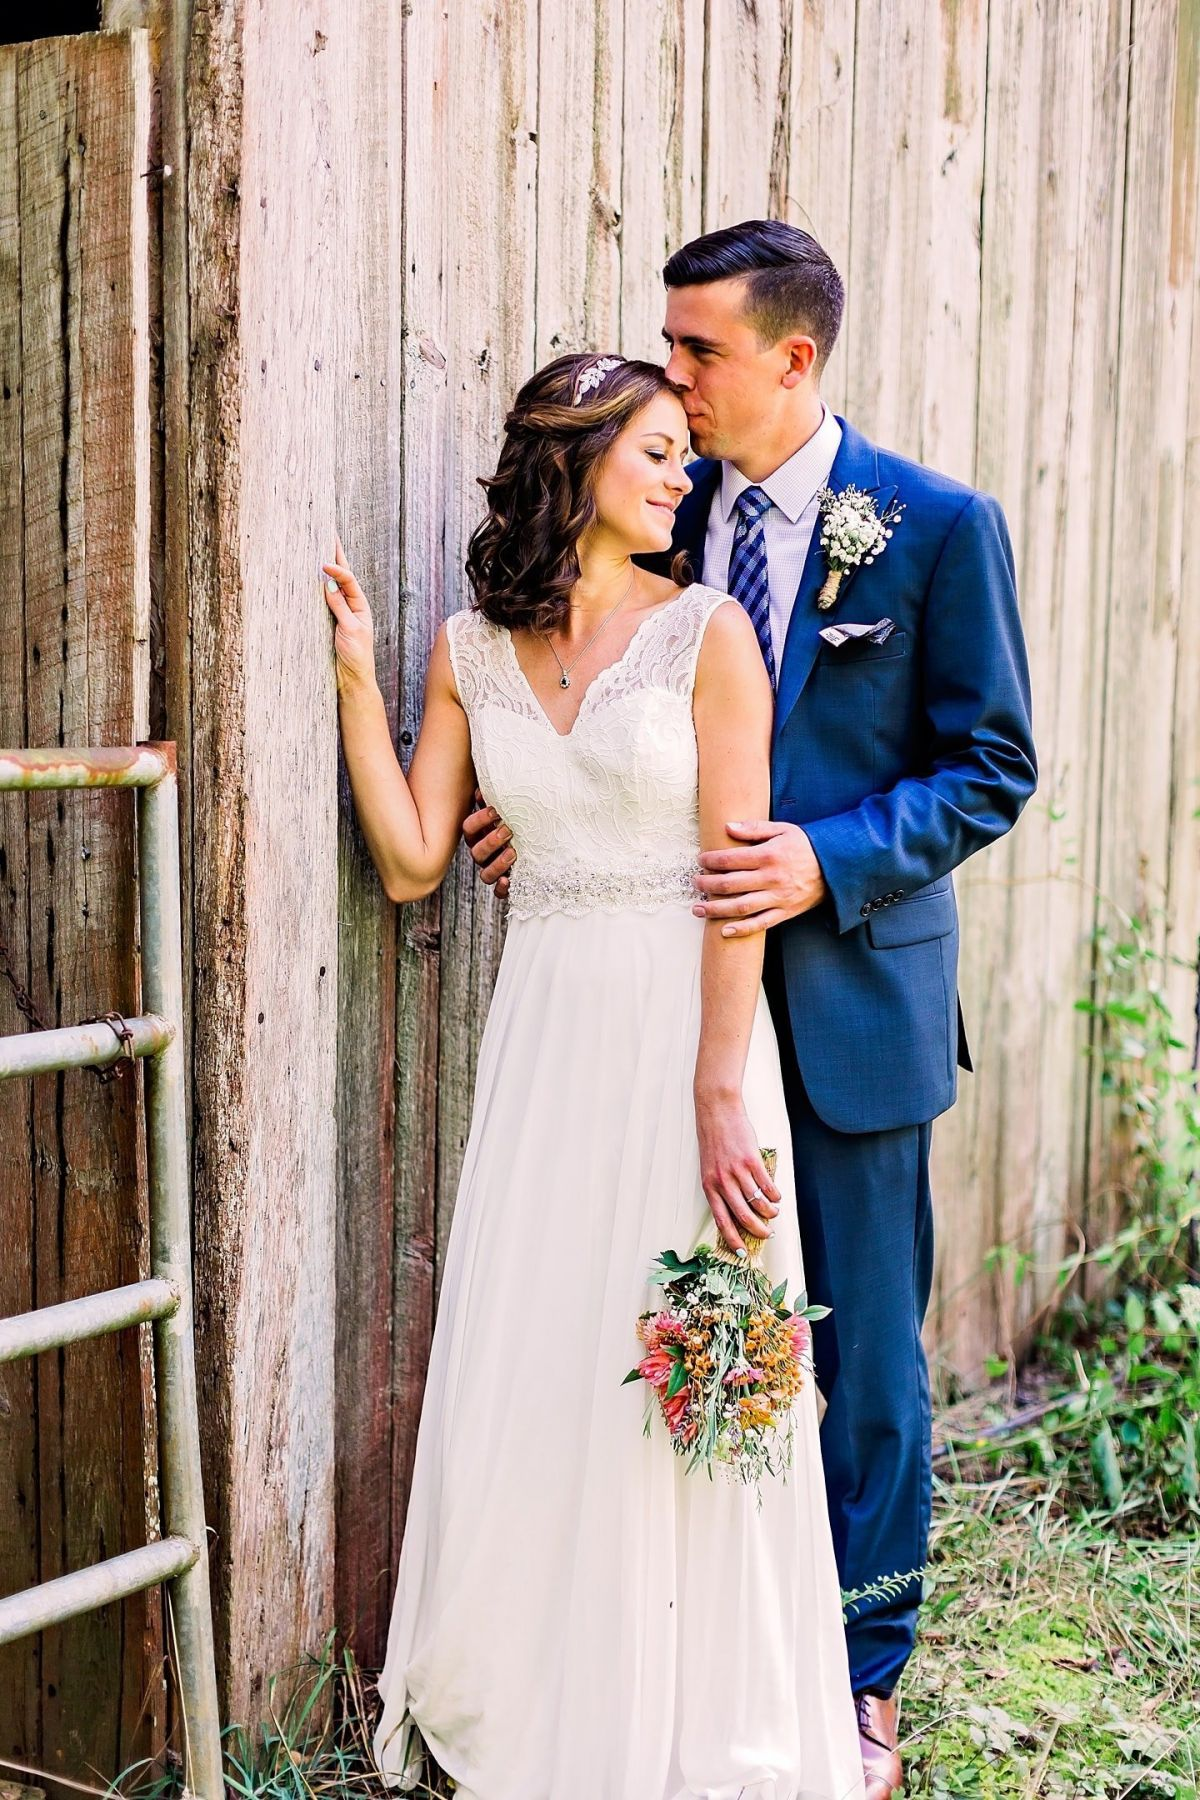 Derek Halkett Photography | Knoxville Wedding Photographer